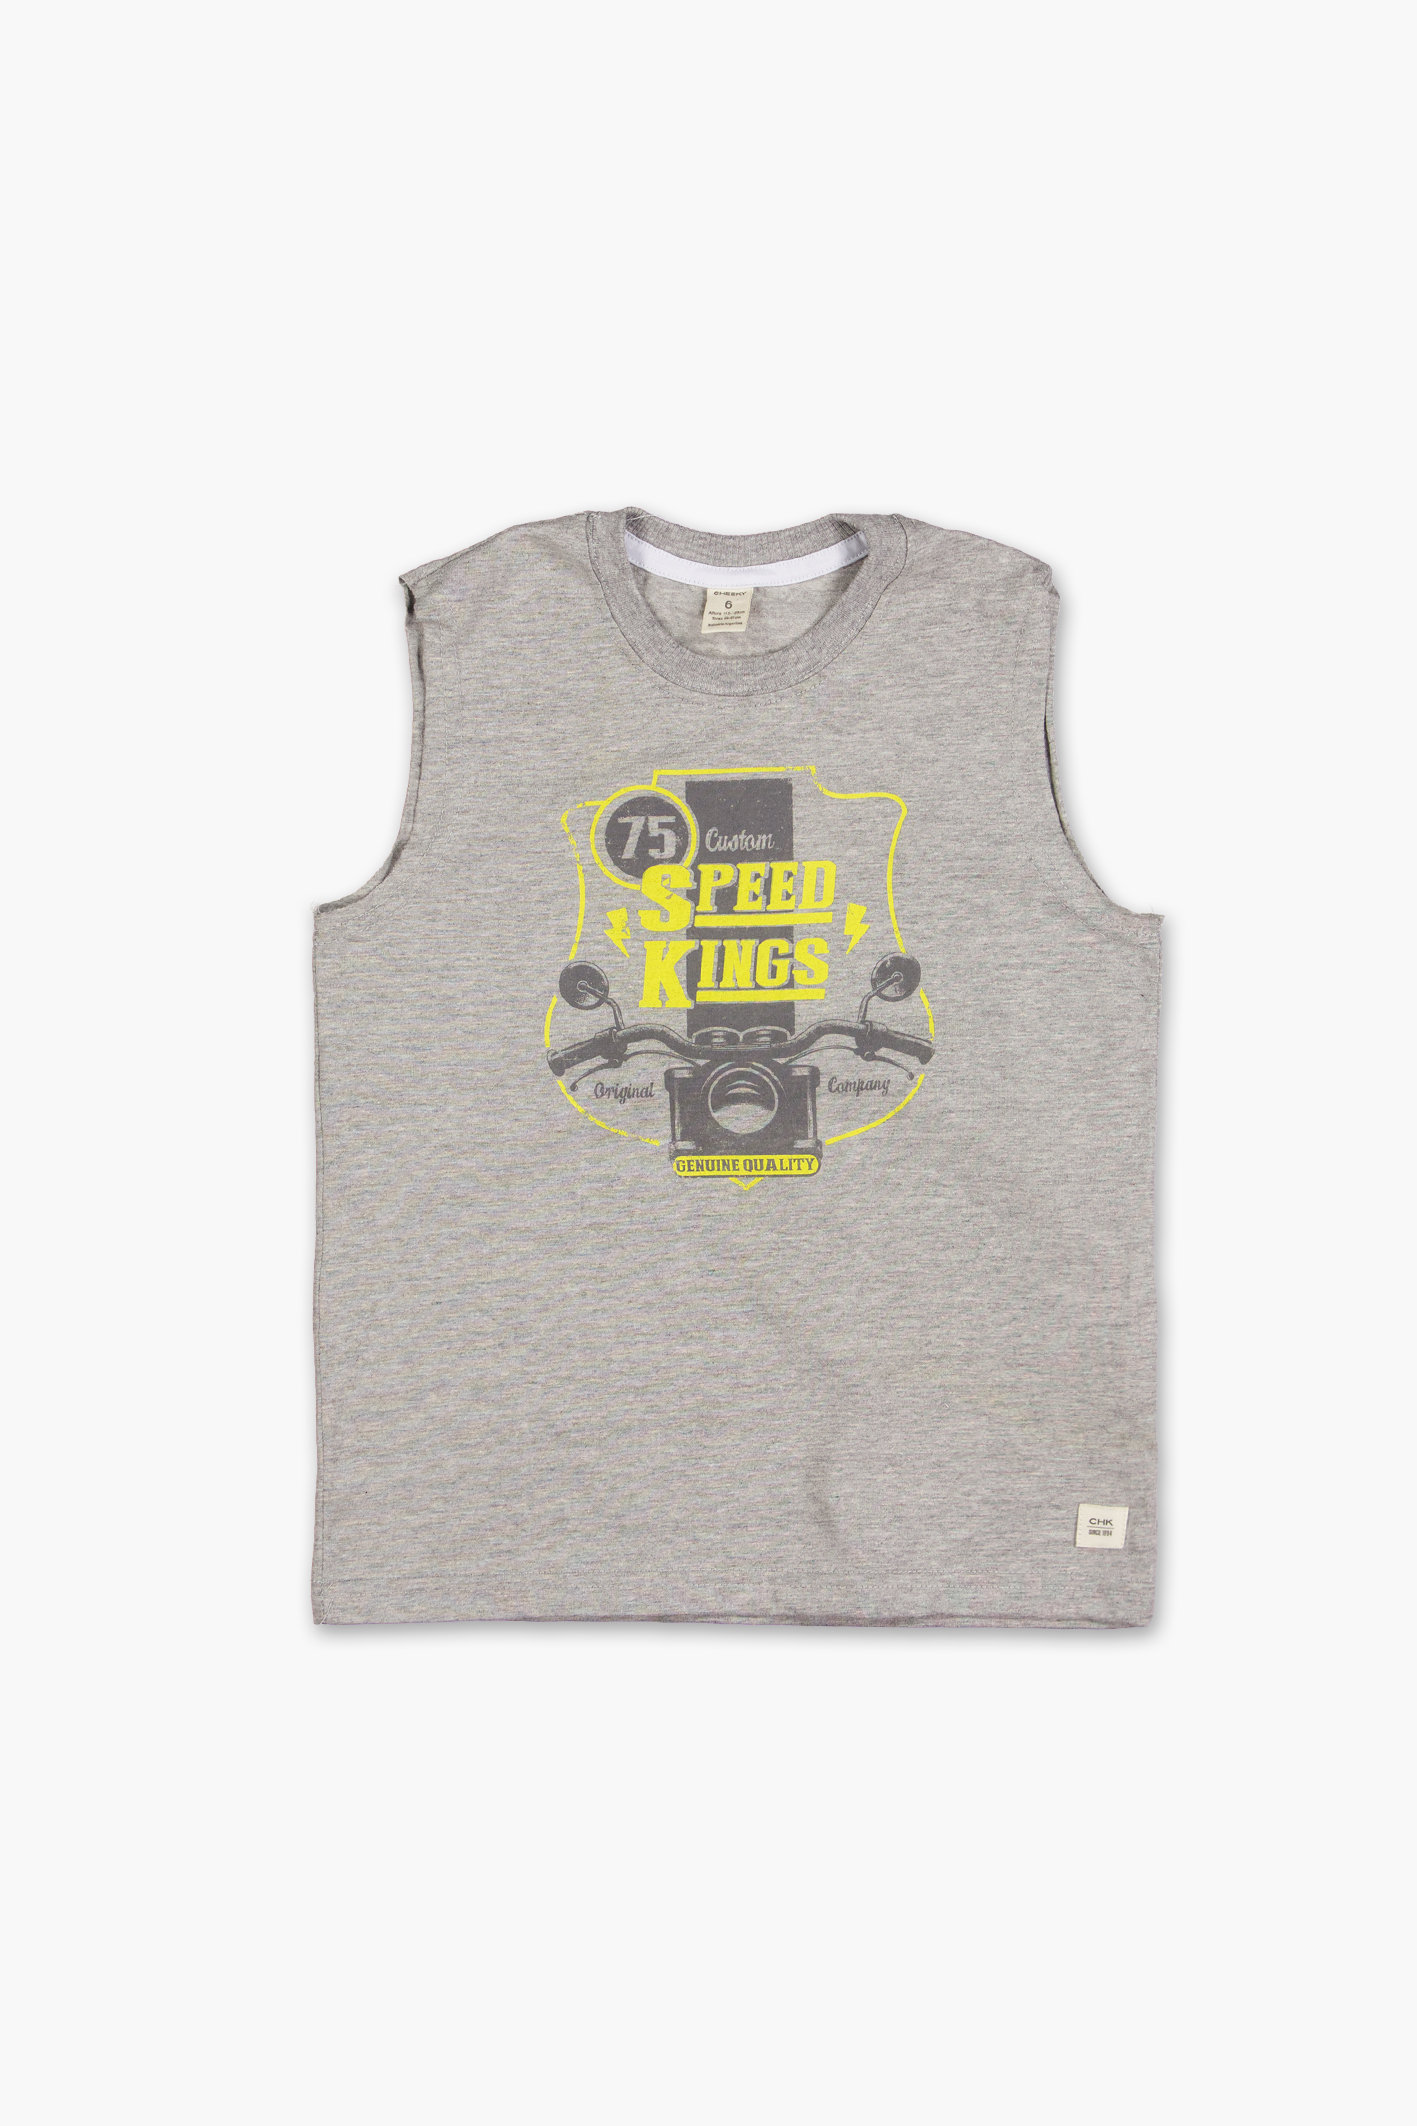 cheeky_musculosa-park-4-12_55-14-2019__picture-50466